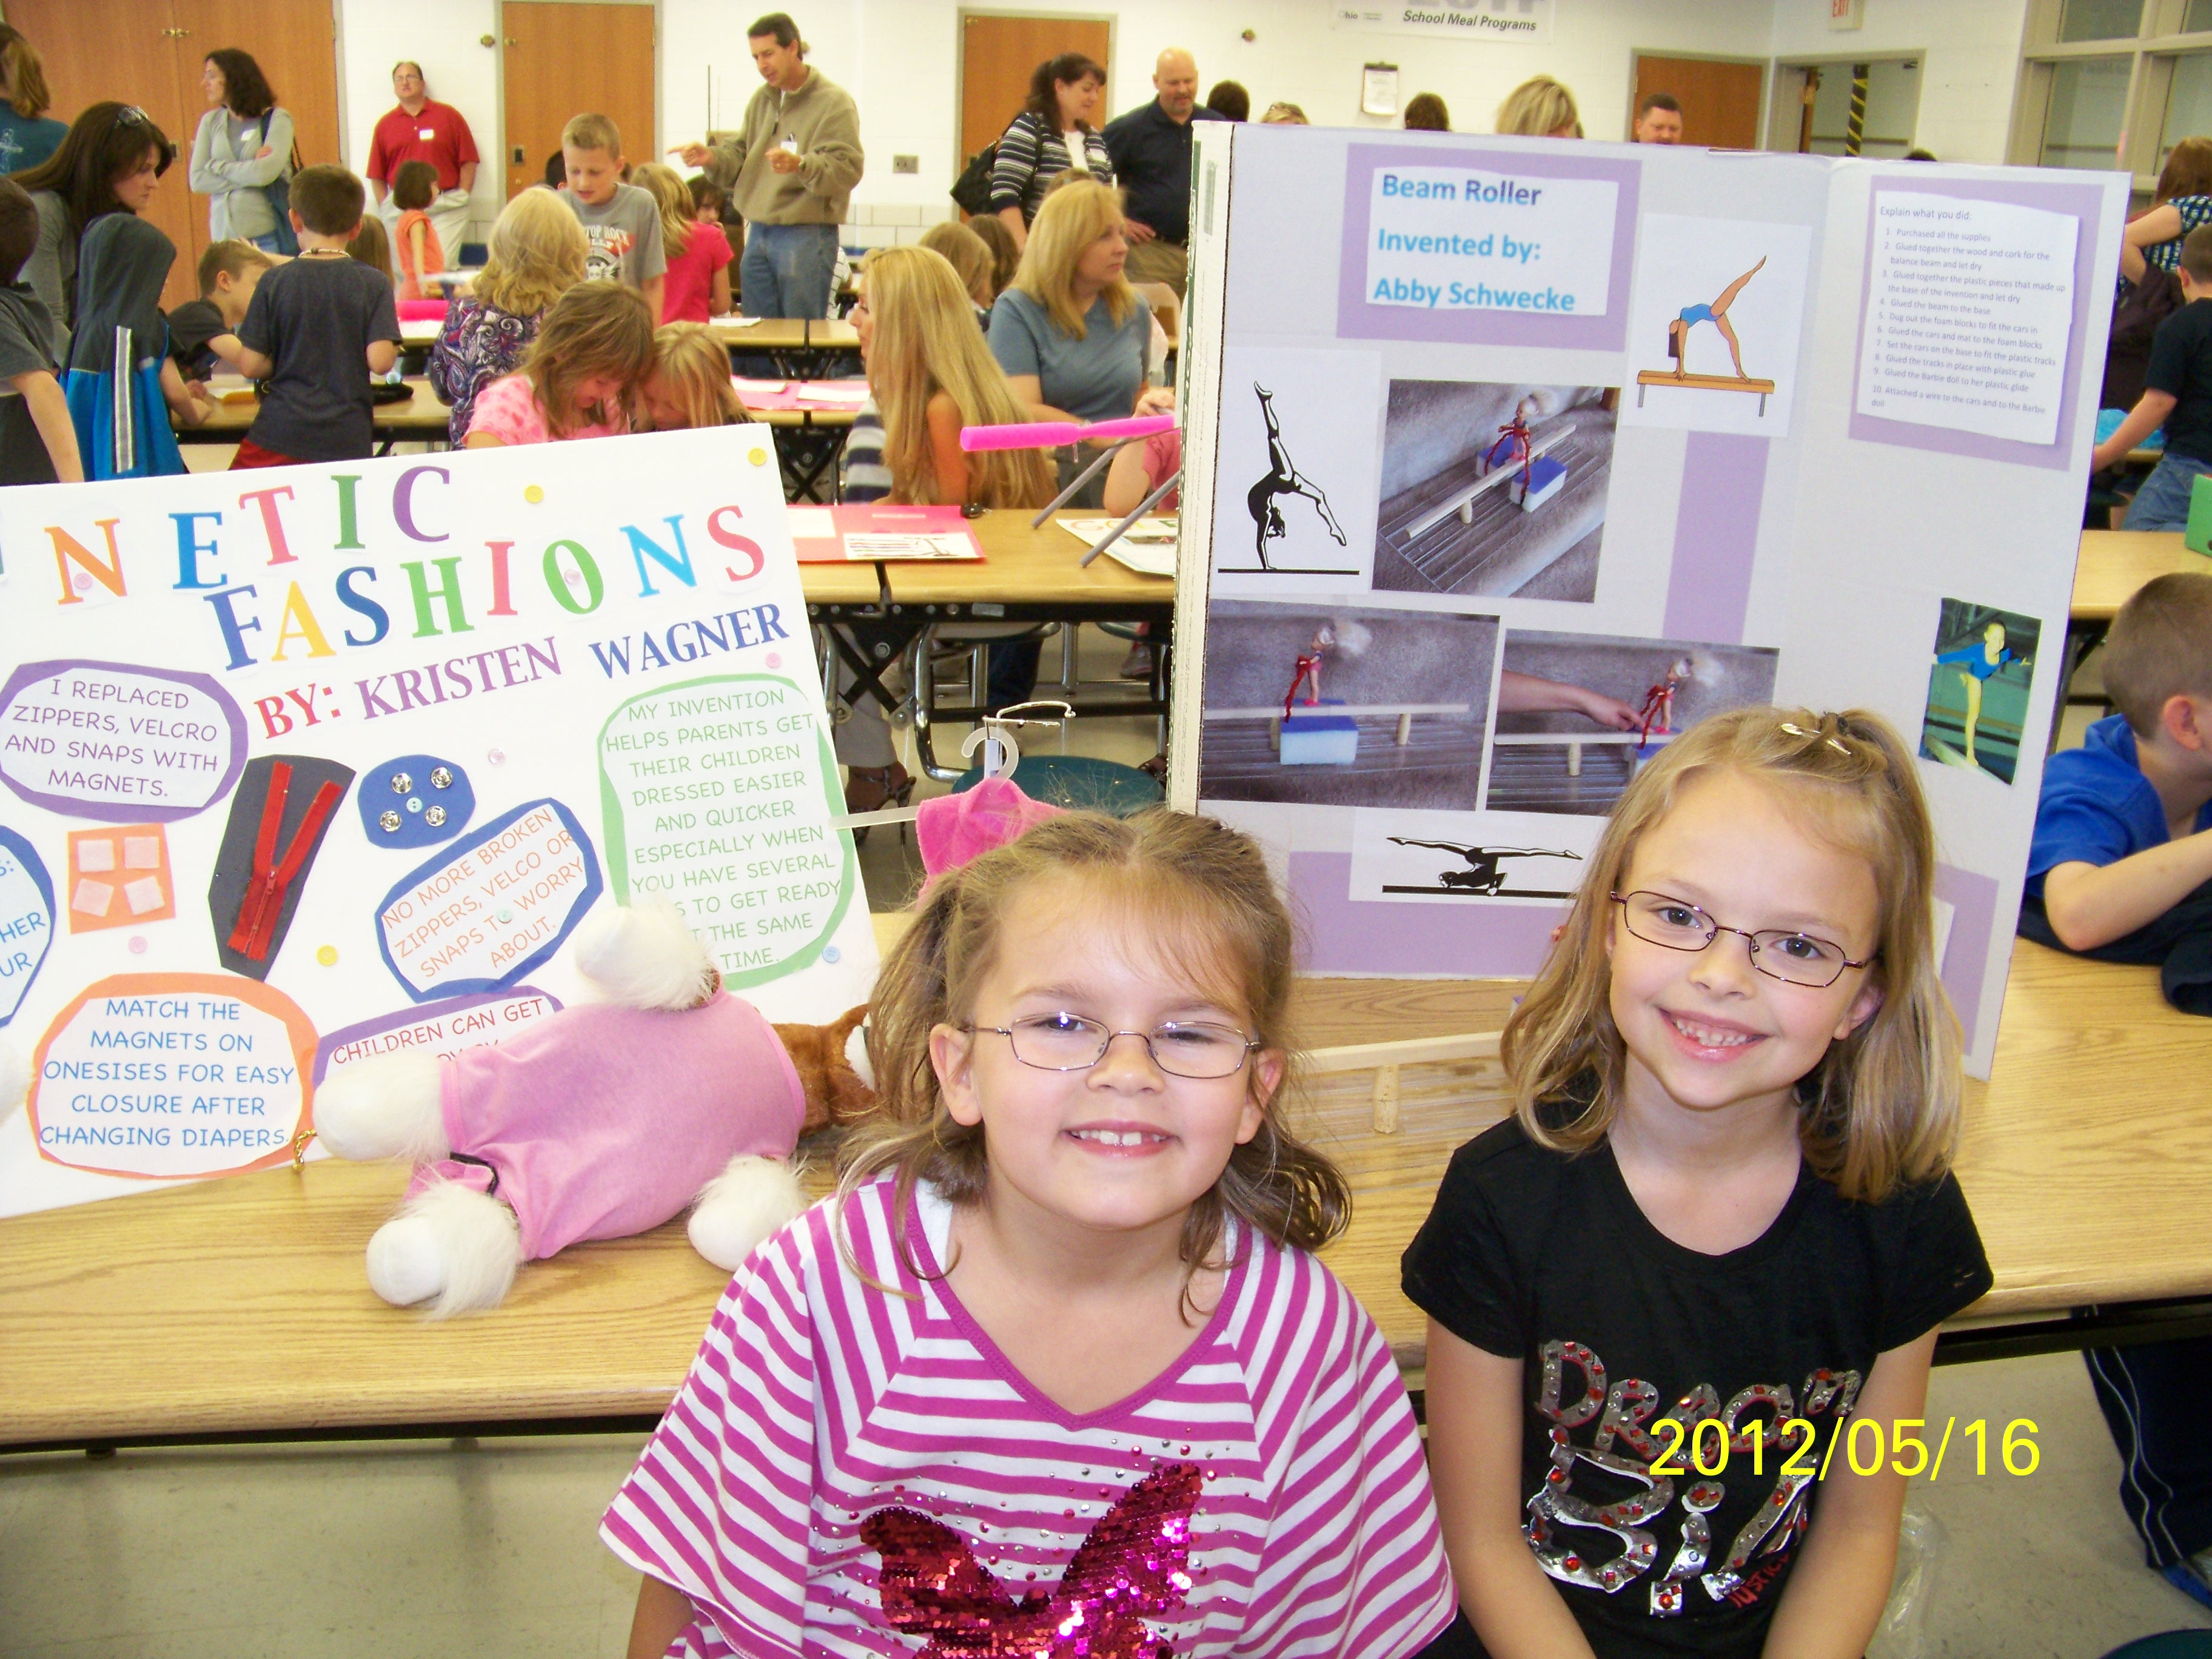 Invention Project Ideas For 5th Graders